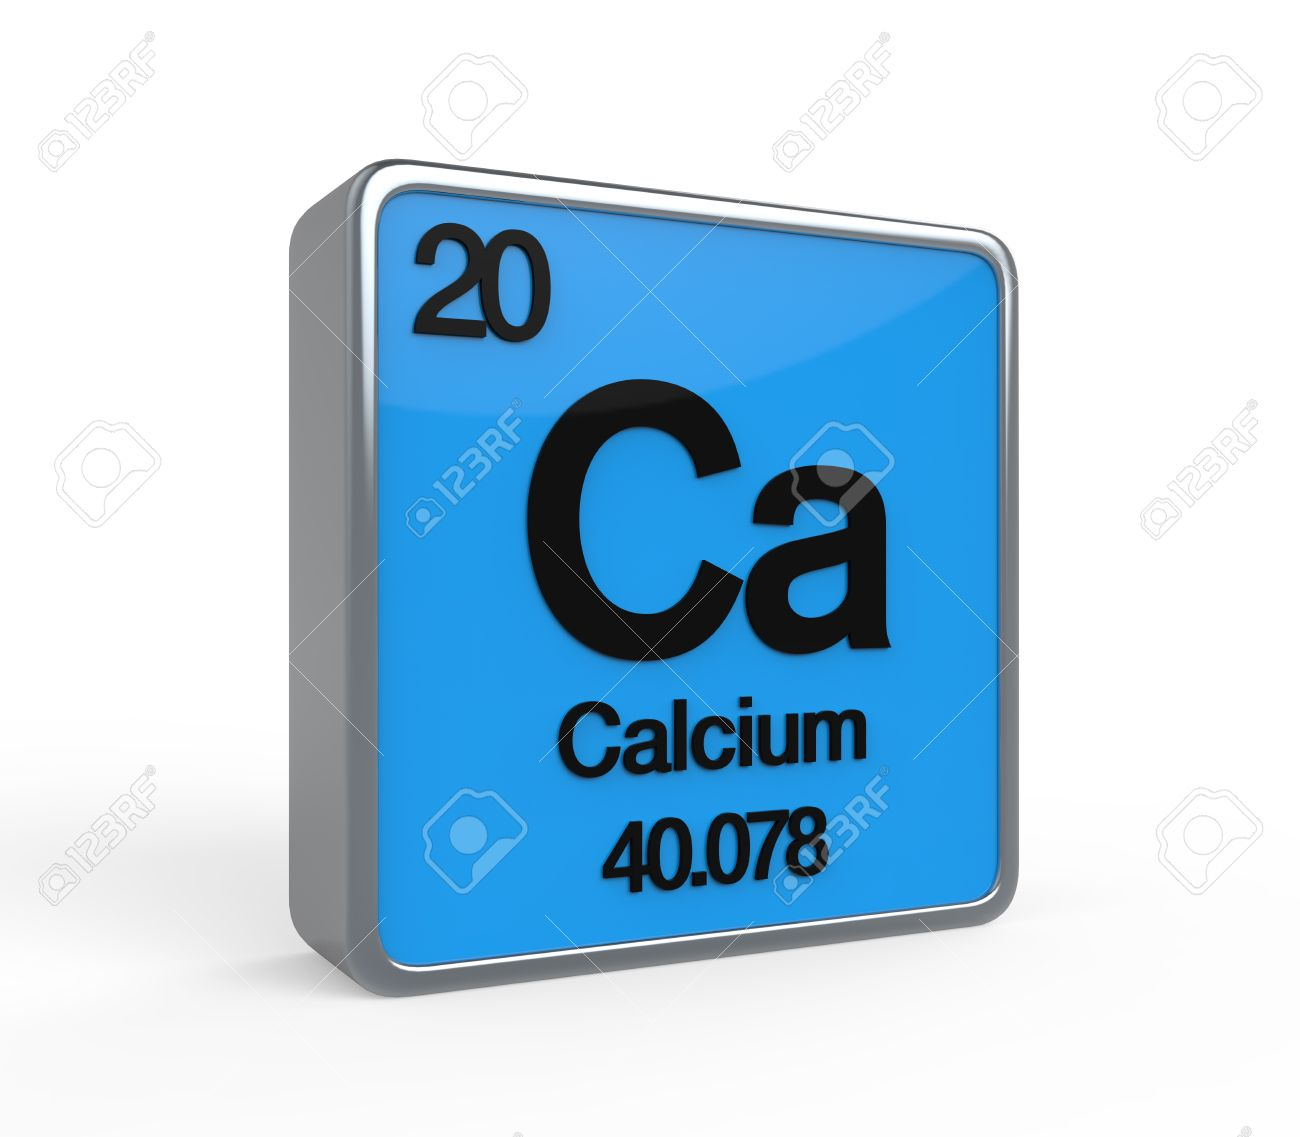 Calcium Element Periodic Table Stock Photo Picture And Royalty Free